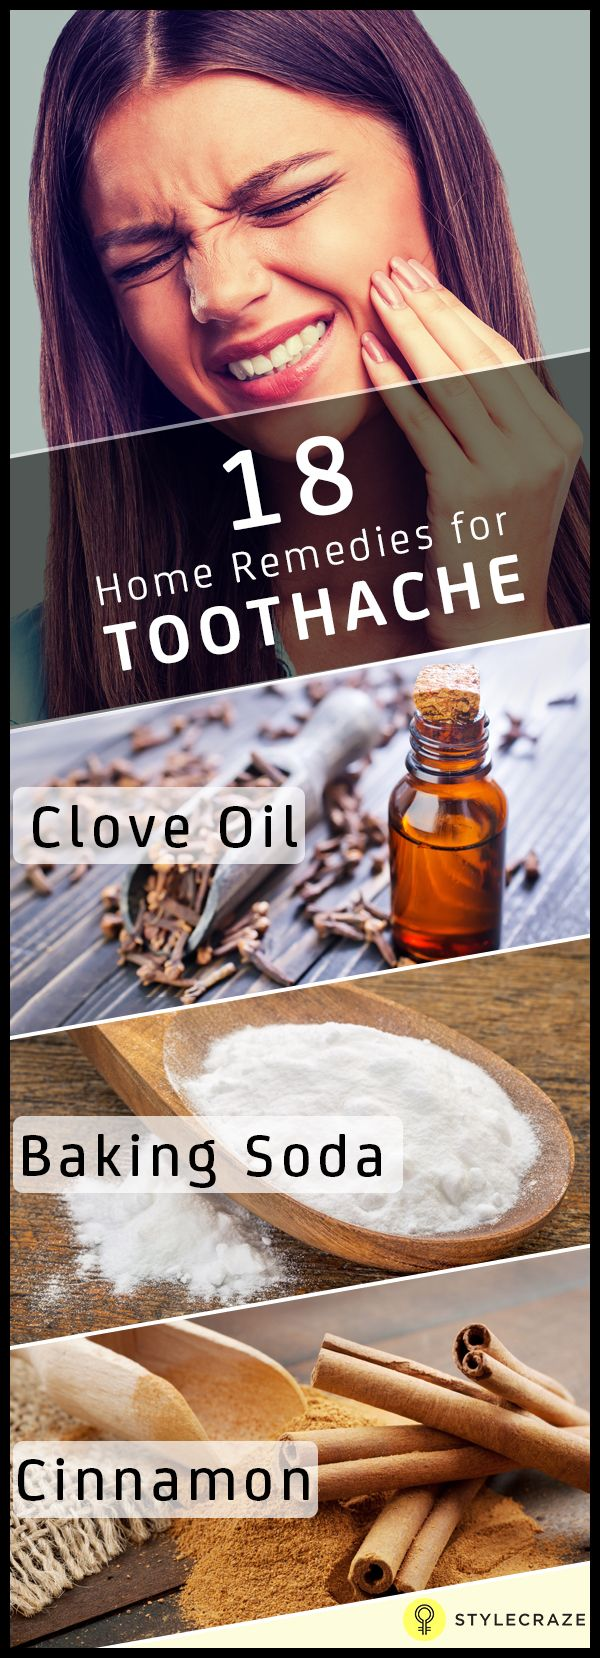 18 Effective Home Remedies For Toothache recommendations